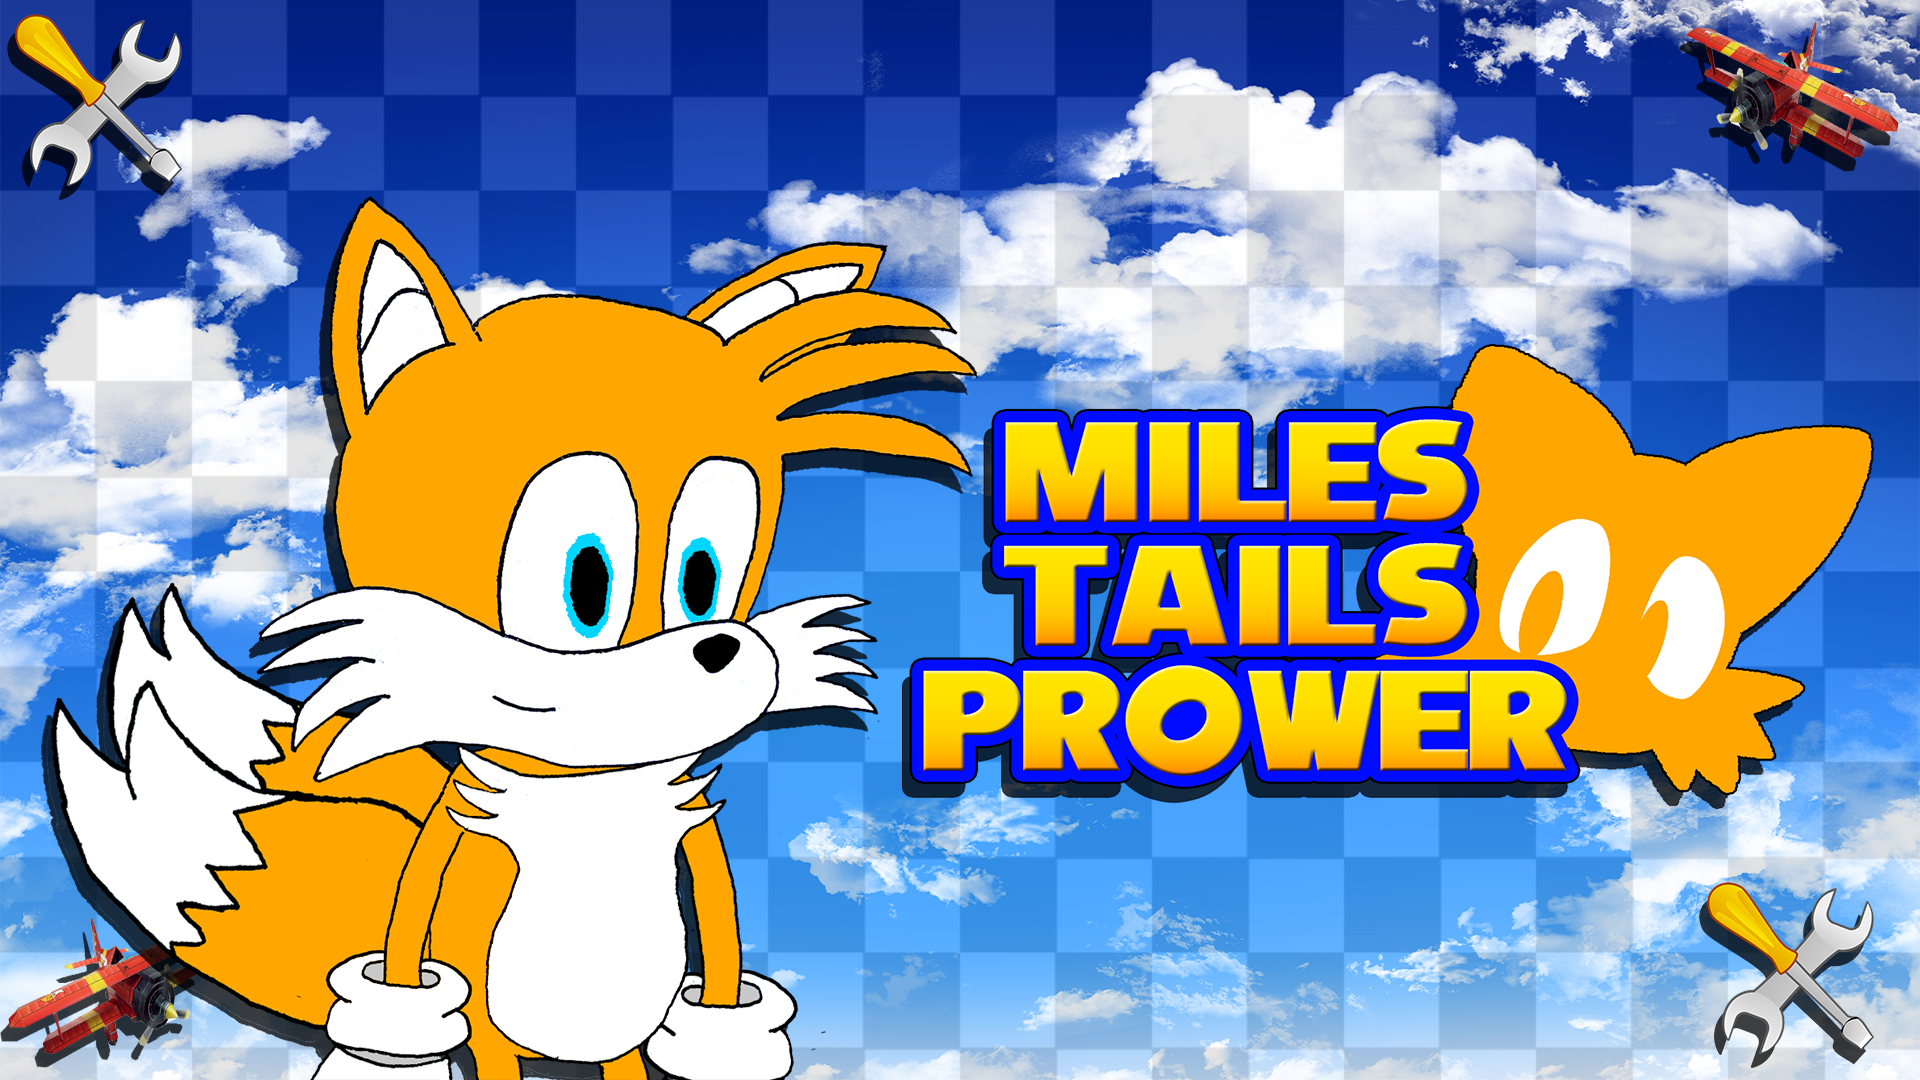 Tails wallpaper by 3bros1mission on deviantart for Zona 5 mobilia no club download